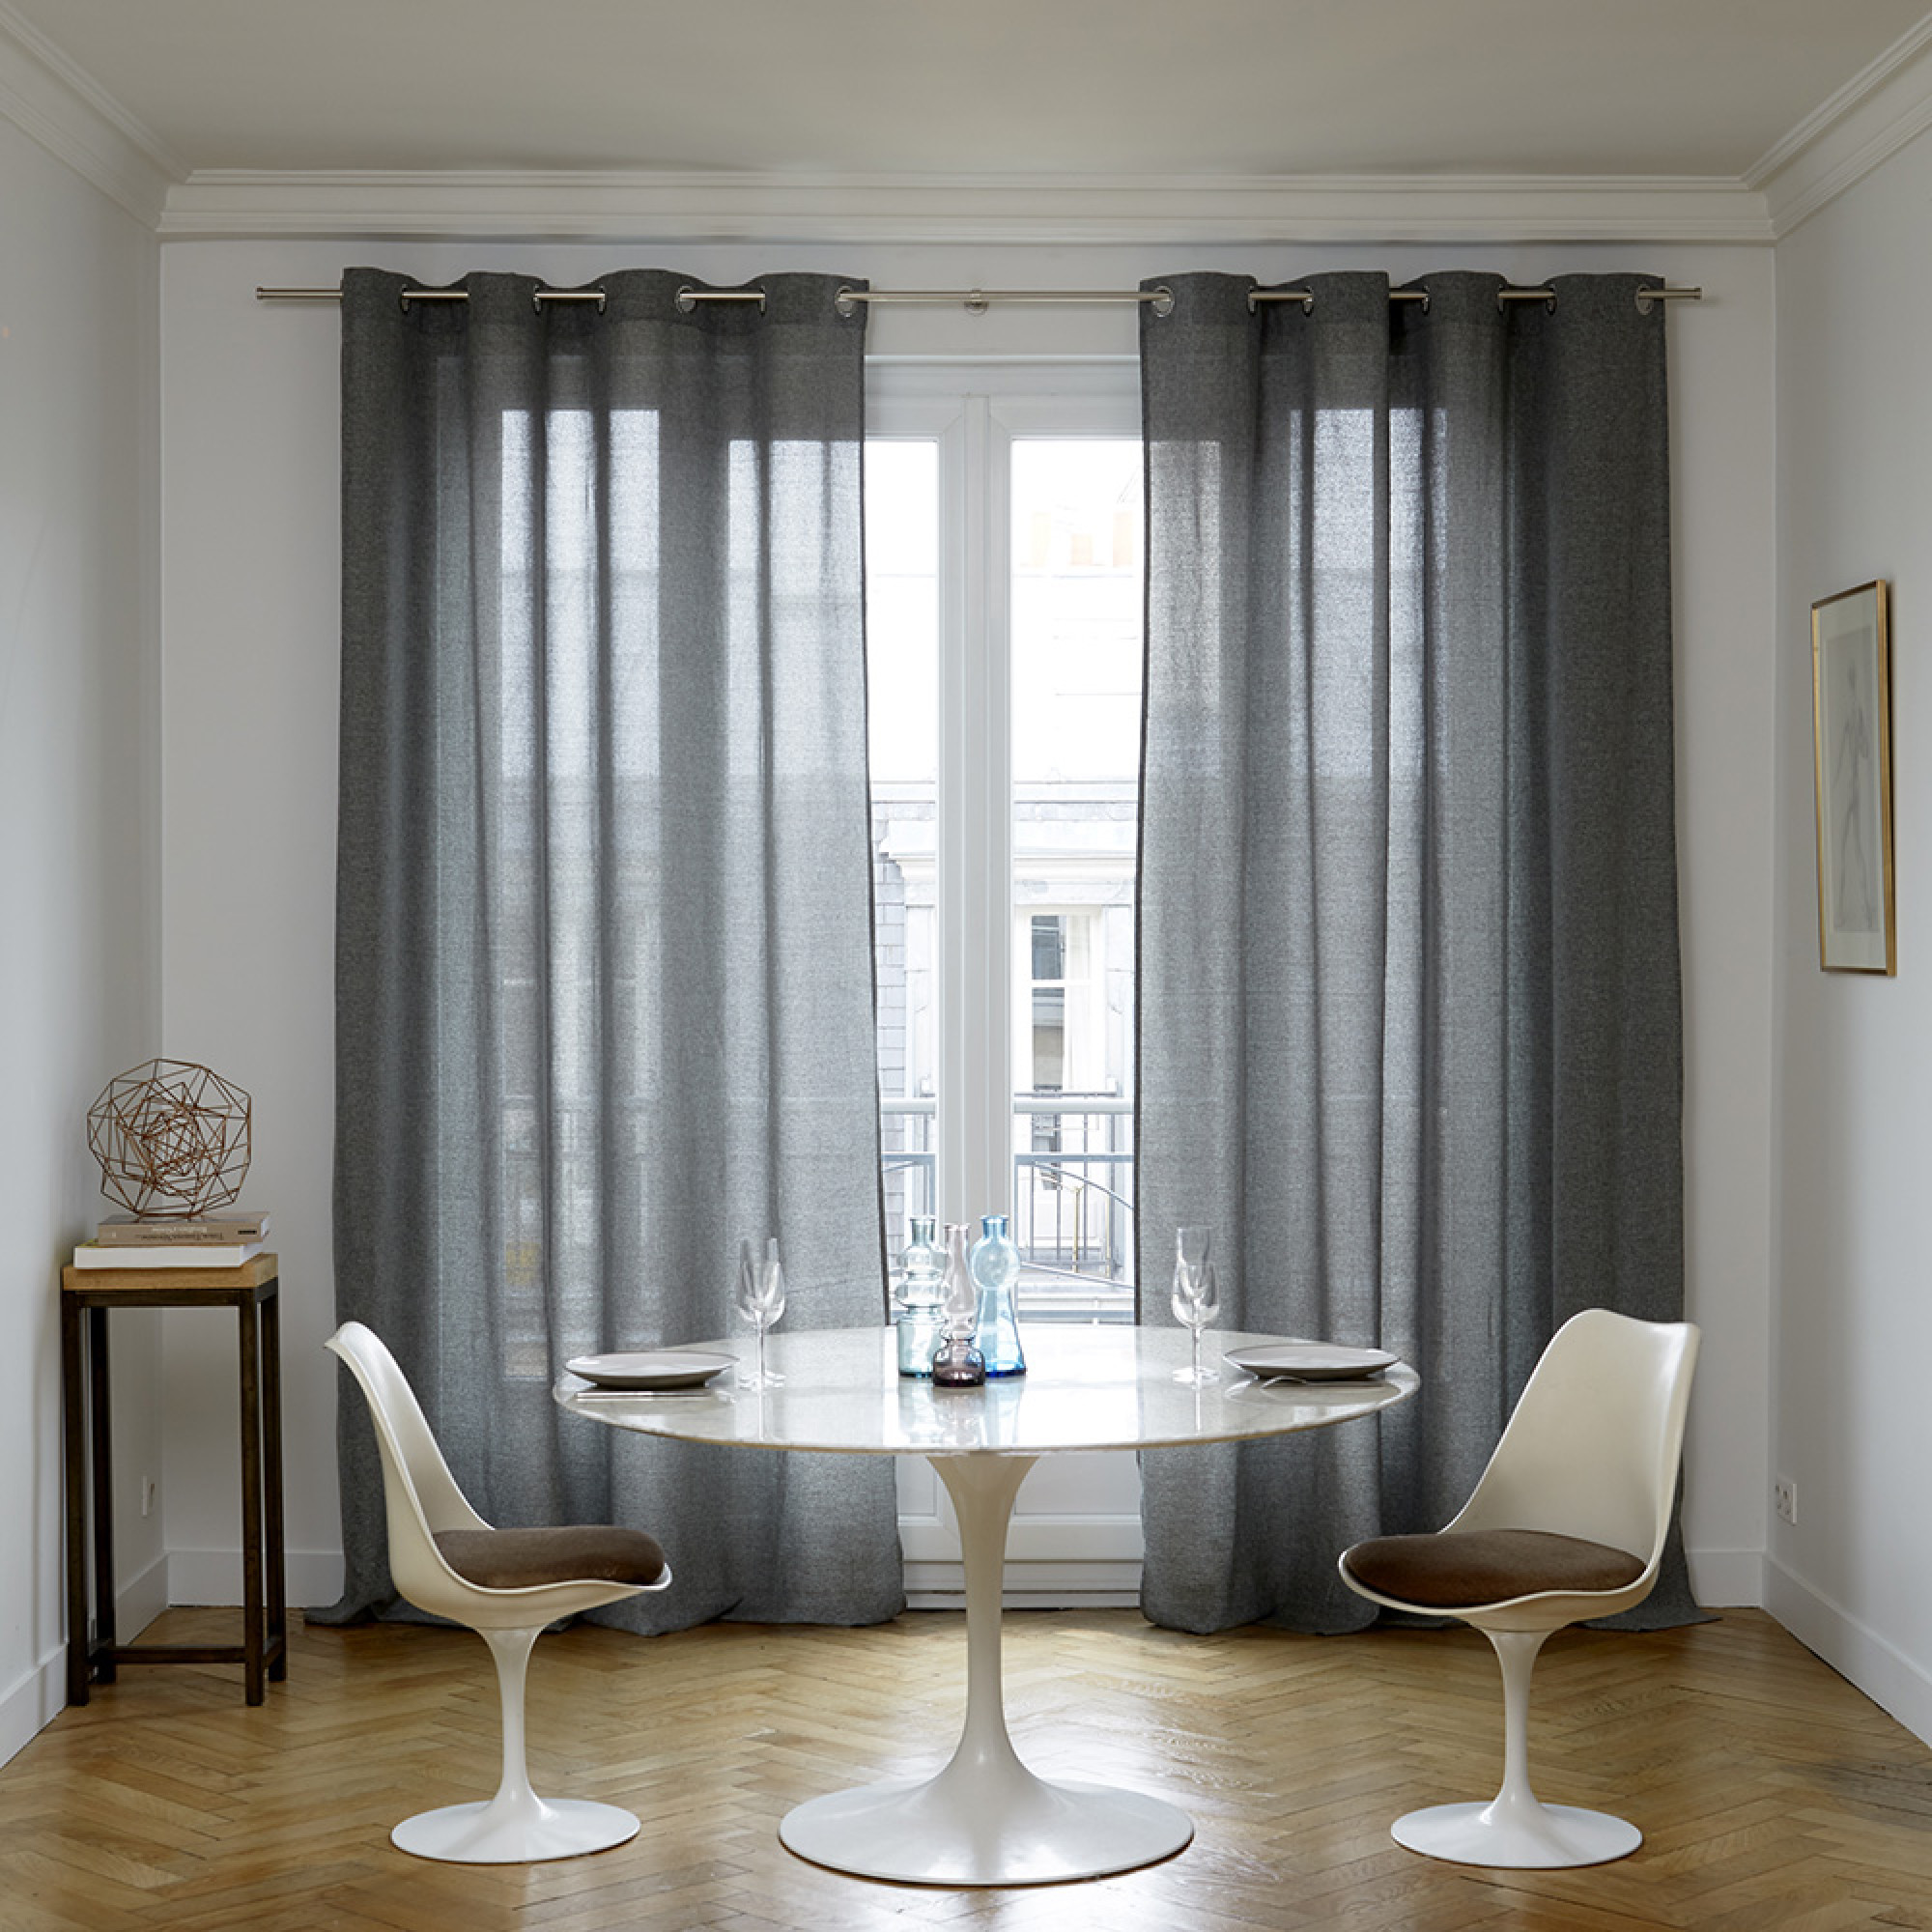 with image home ideas of curtains curtain sale grommets charter